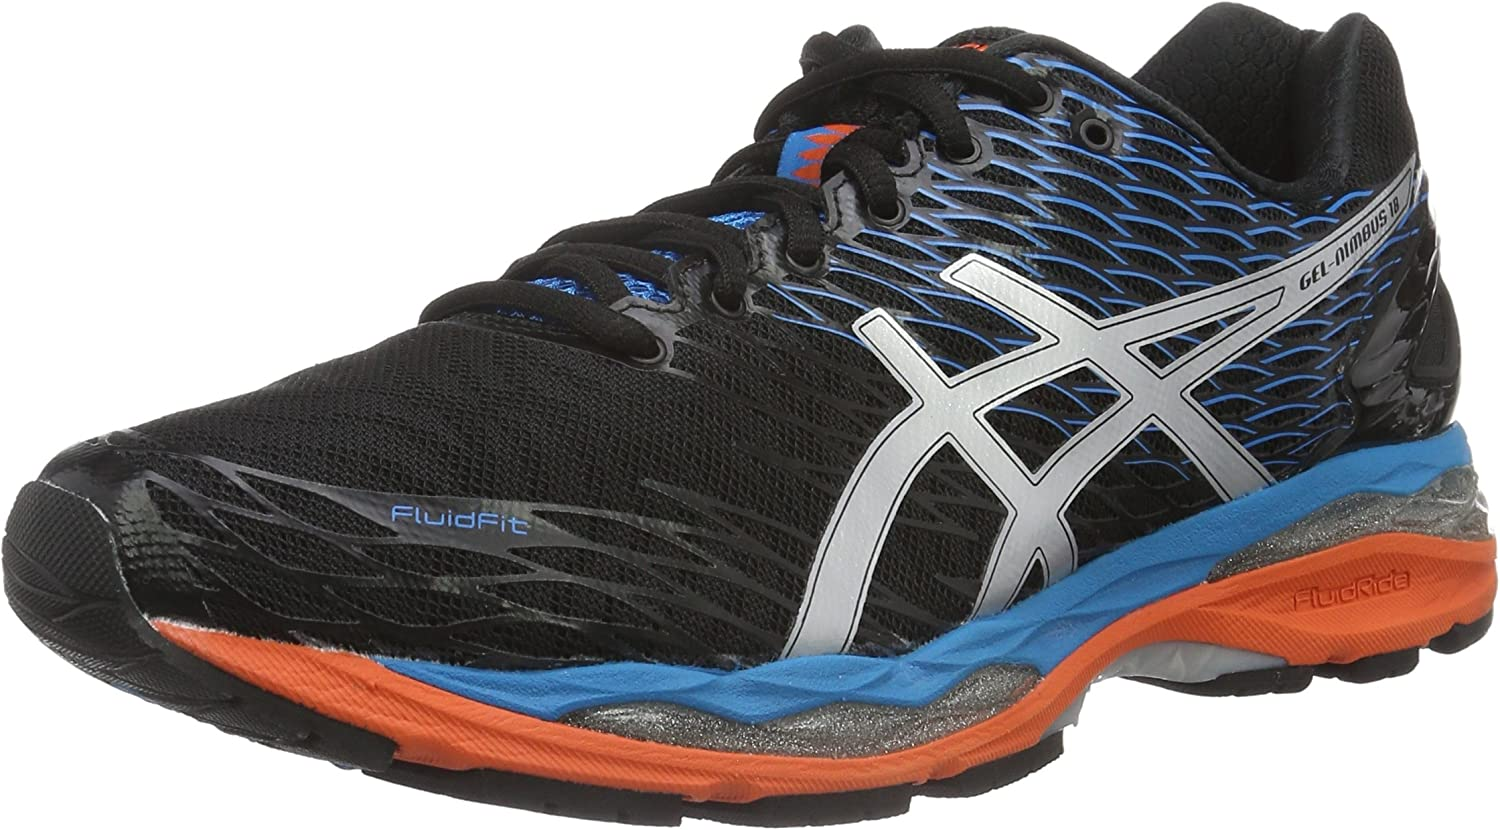 Asics Gel-Nimbus 18, Zapatillas de Running para Hombre, Multicolor (Onyx/Silver/Blue Jewel), 46 EU: Amazon.es: Zapatos y complementos